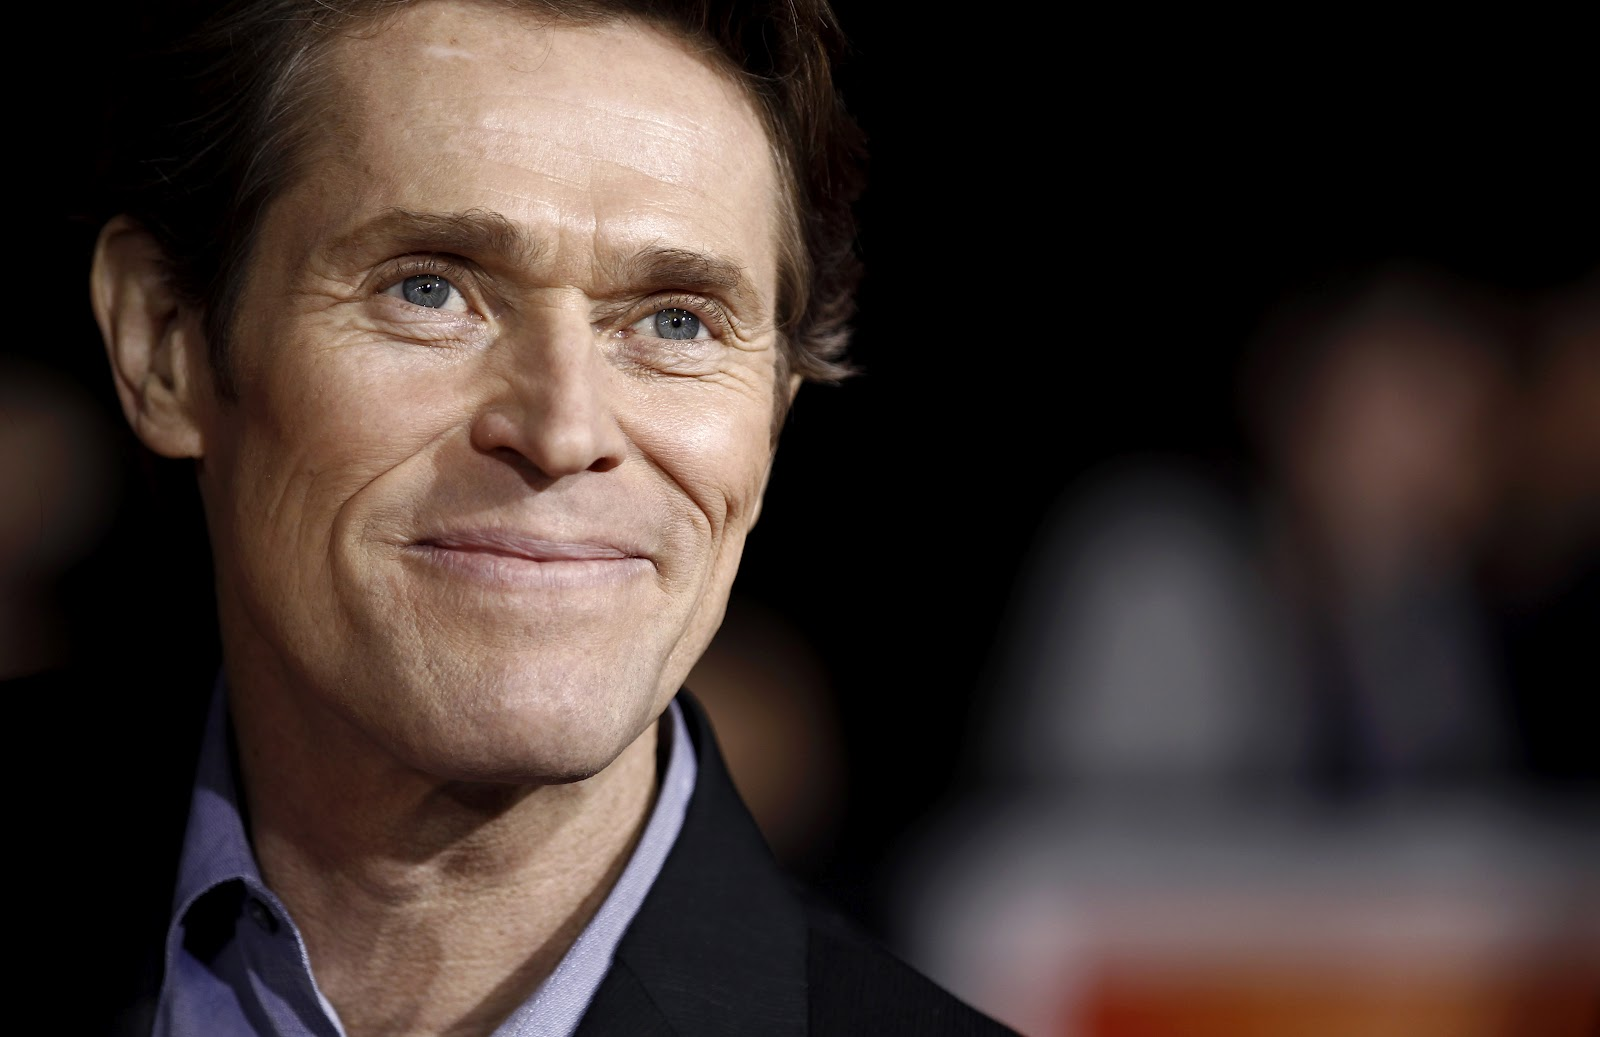 Willem Dafoe Wallpapers High Quality